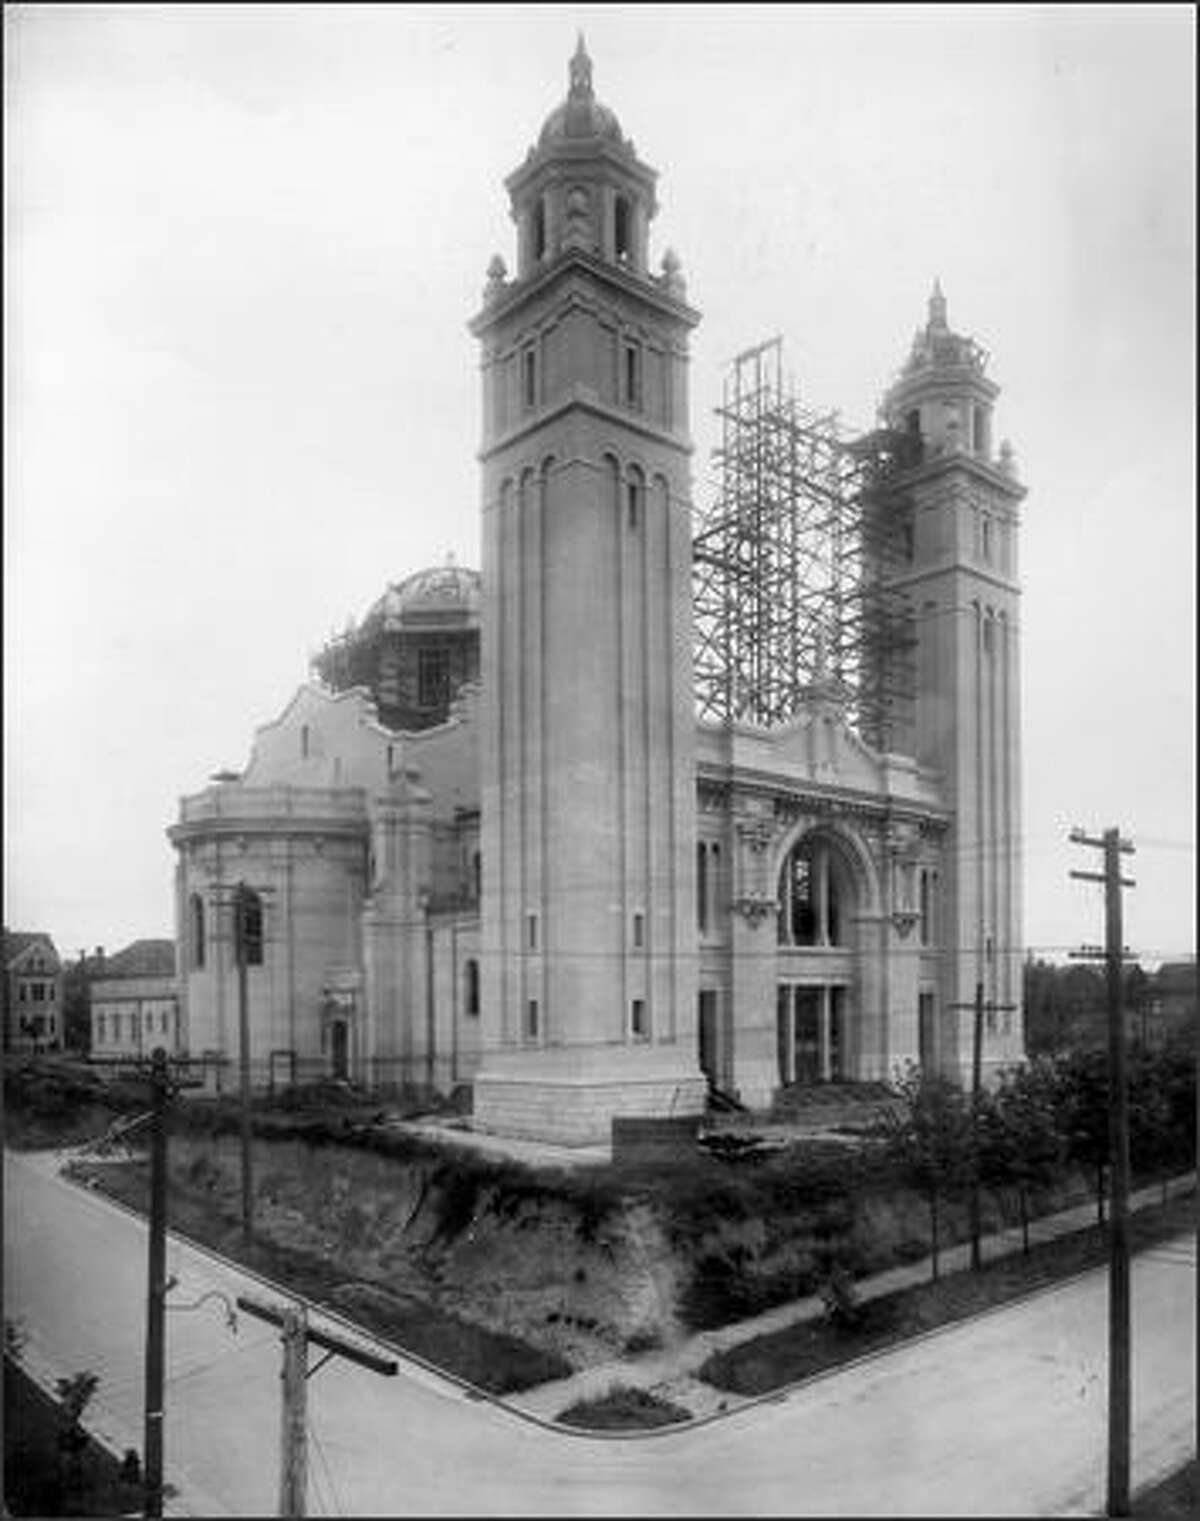 Since its dedication in 1907, the towers of St. James Cathedral, shown here under construction, have stood out above Seattle's downtown. When plans for the cathedral, to be built in the Italian Renaissance style, were first announced by Bishop Edward O'Dea in the late 1890s, there were few Catholics in the city. After 38 years, the original cost of and $300,000 in interest was paid off. In 1950, the cathedral was completely renovated.